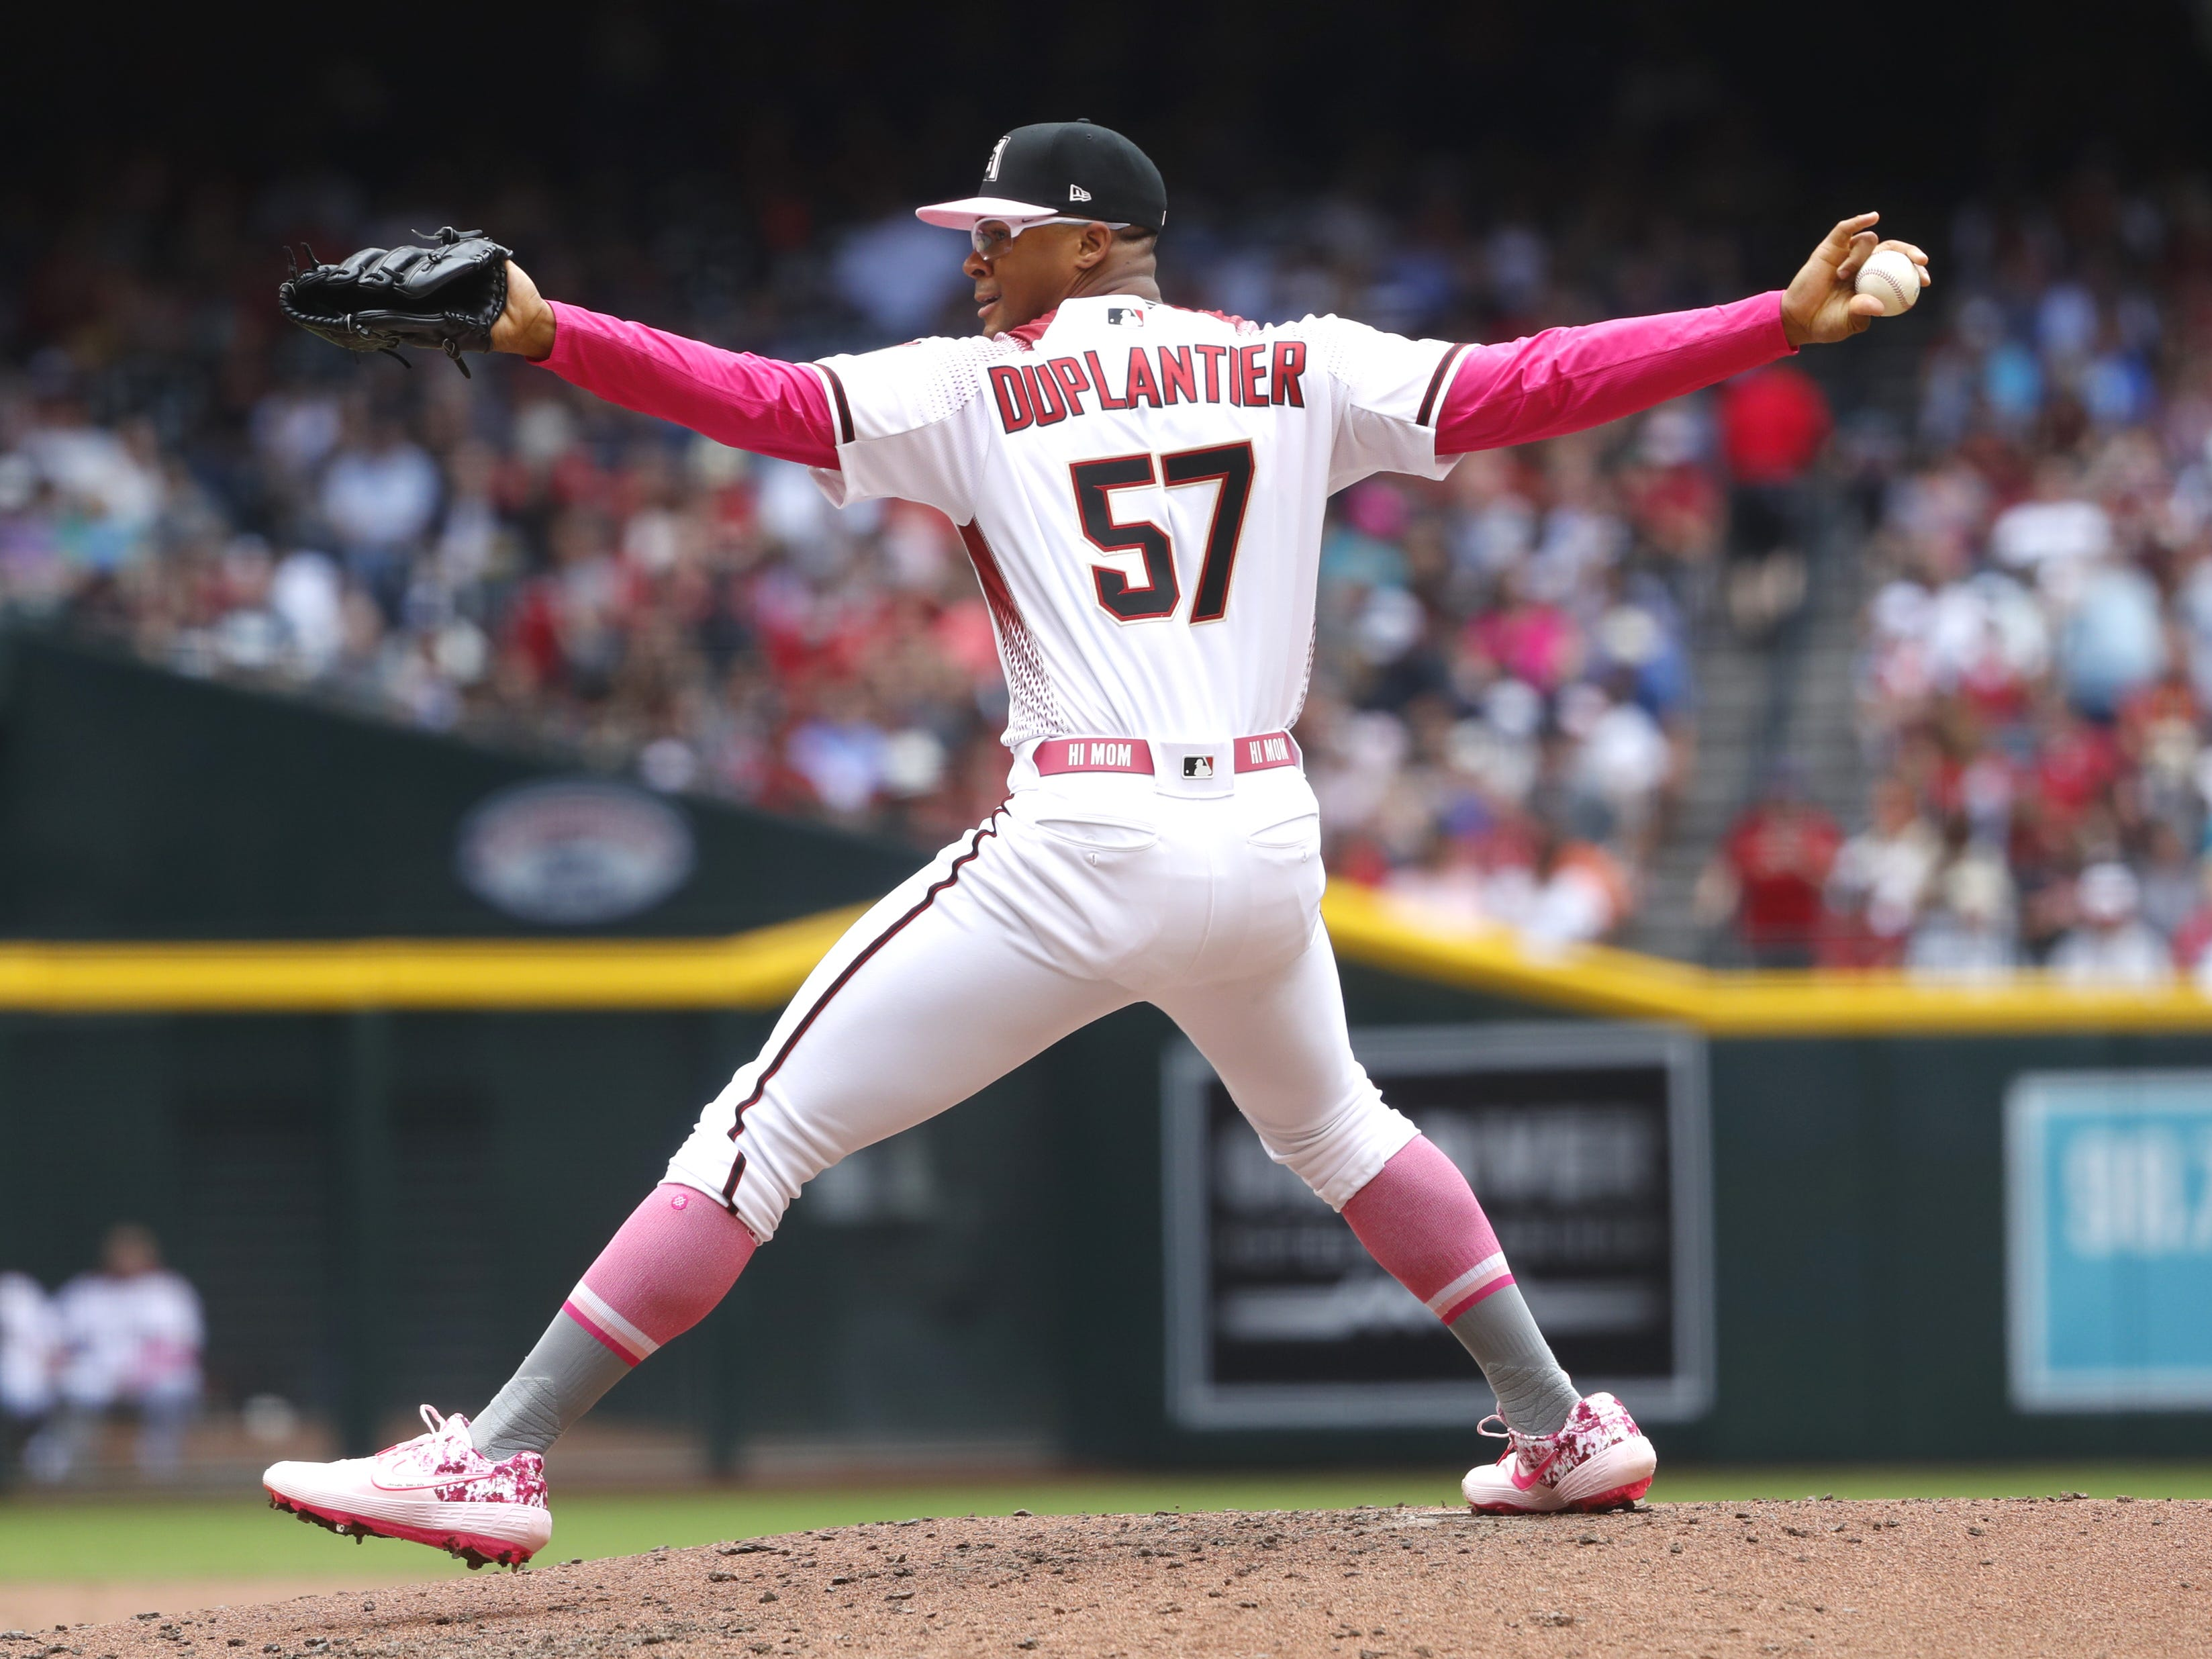 Diamondbacks' Jon Duplantier (57) pitches in third inning against the Braves at Chase Field in Phoenix, Ariz. on May 12, 2019.